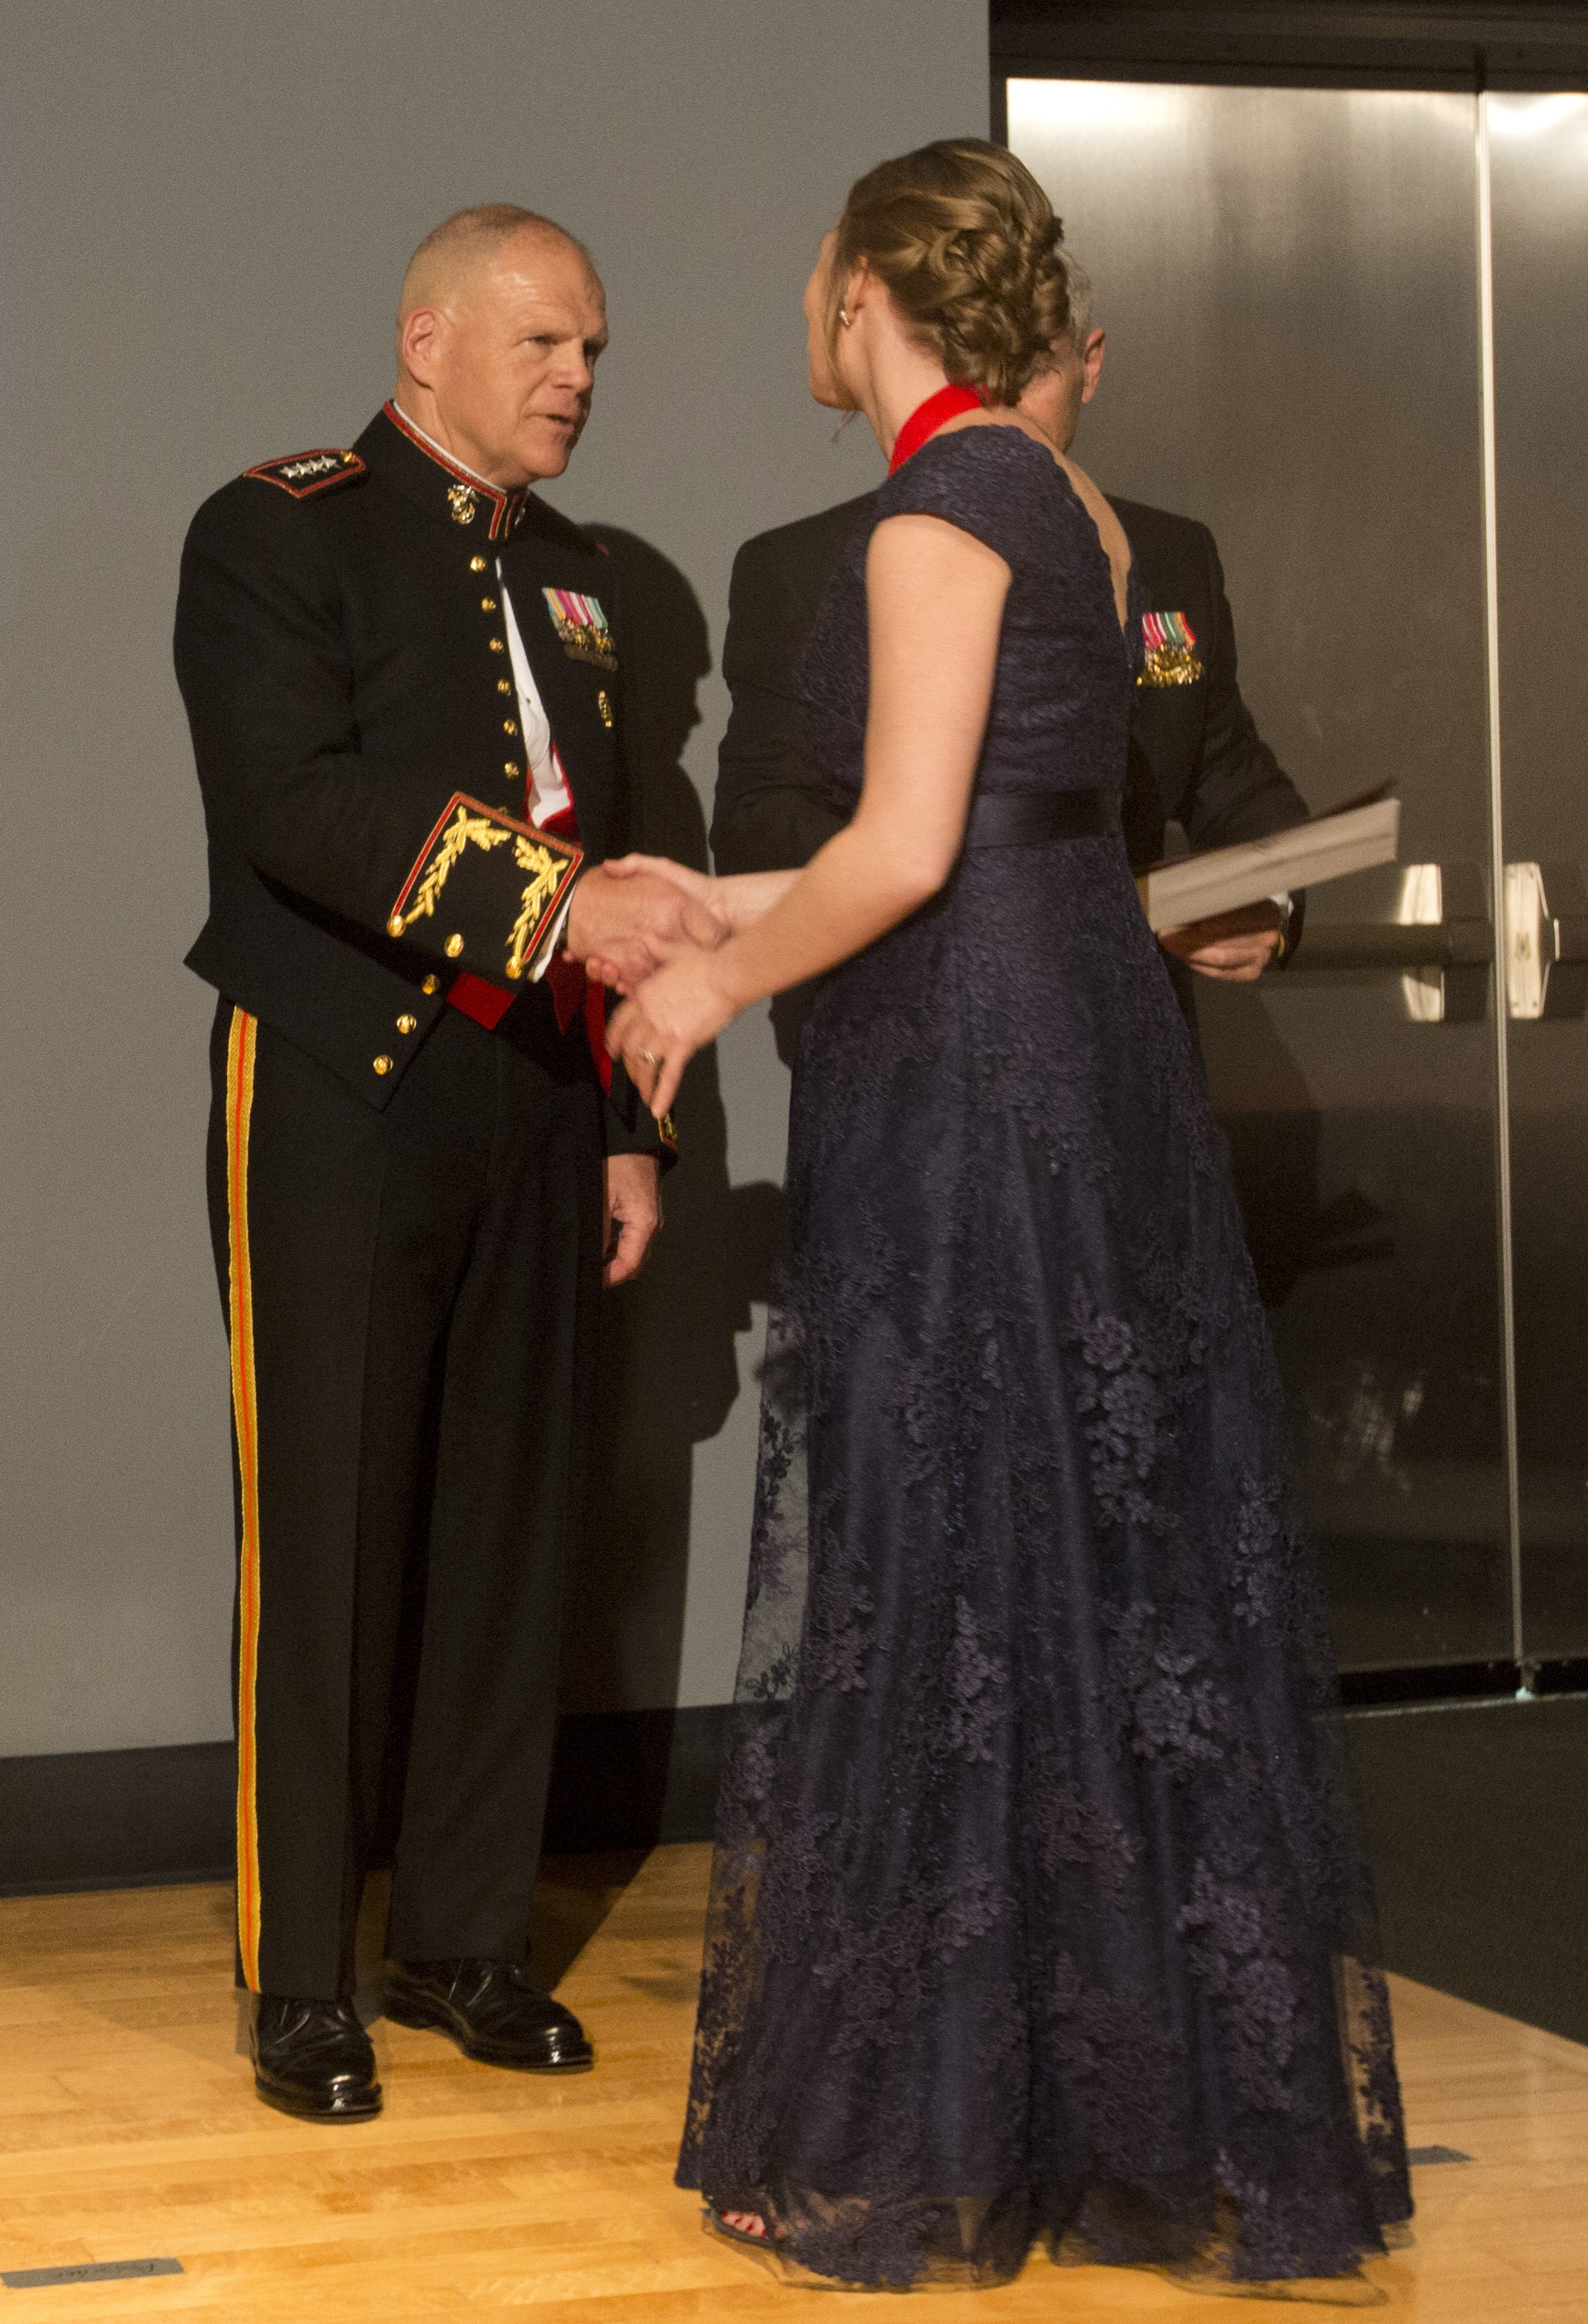 Mardie Rees receiving her award from General Neller, USMC